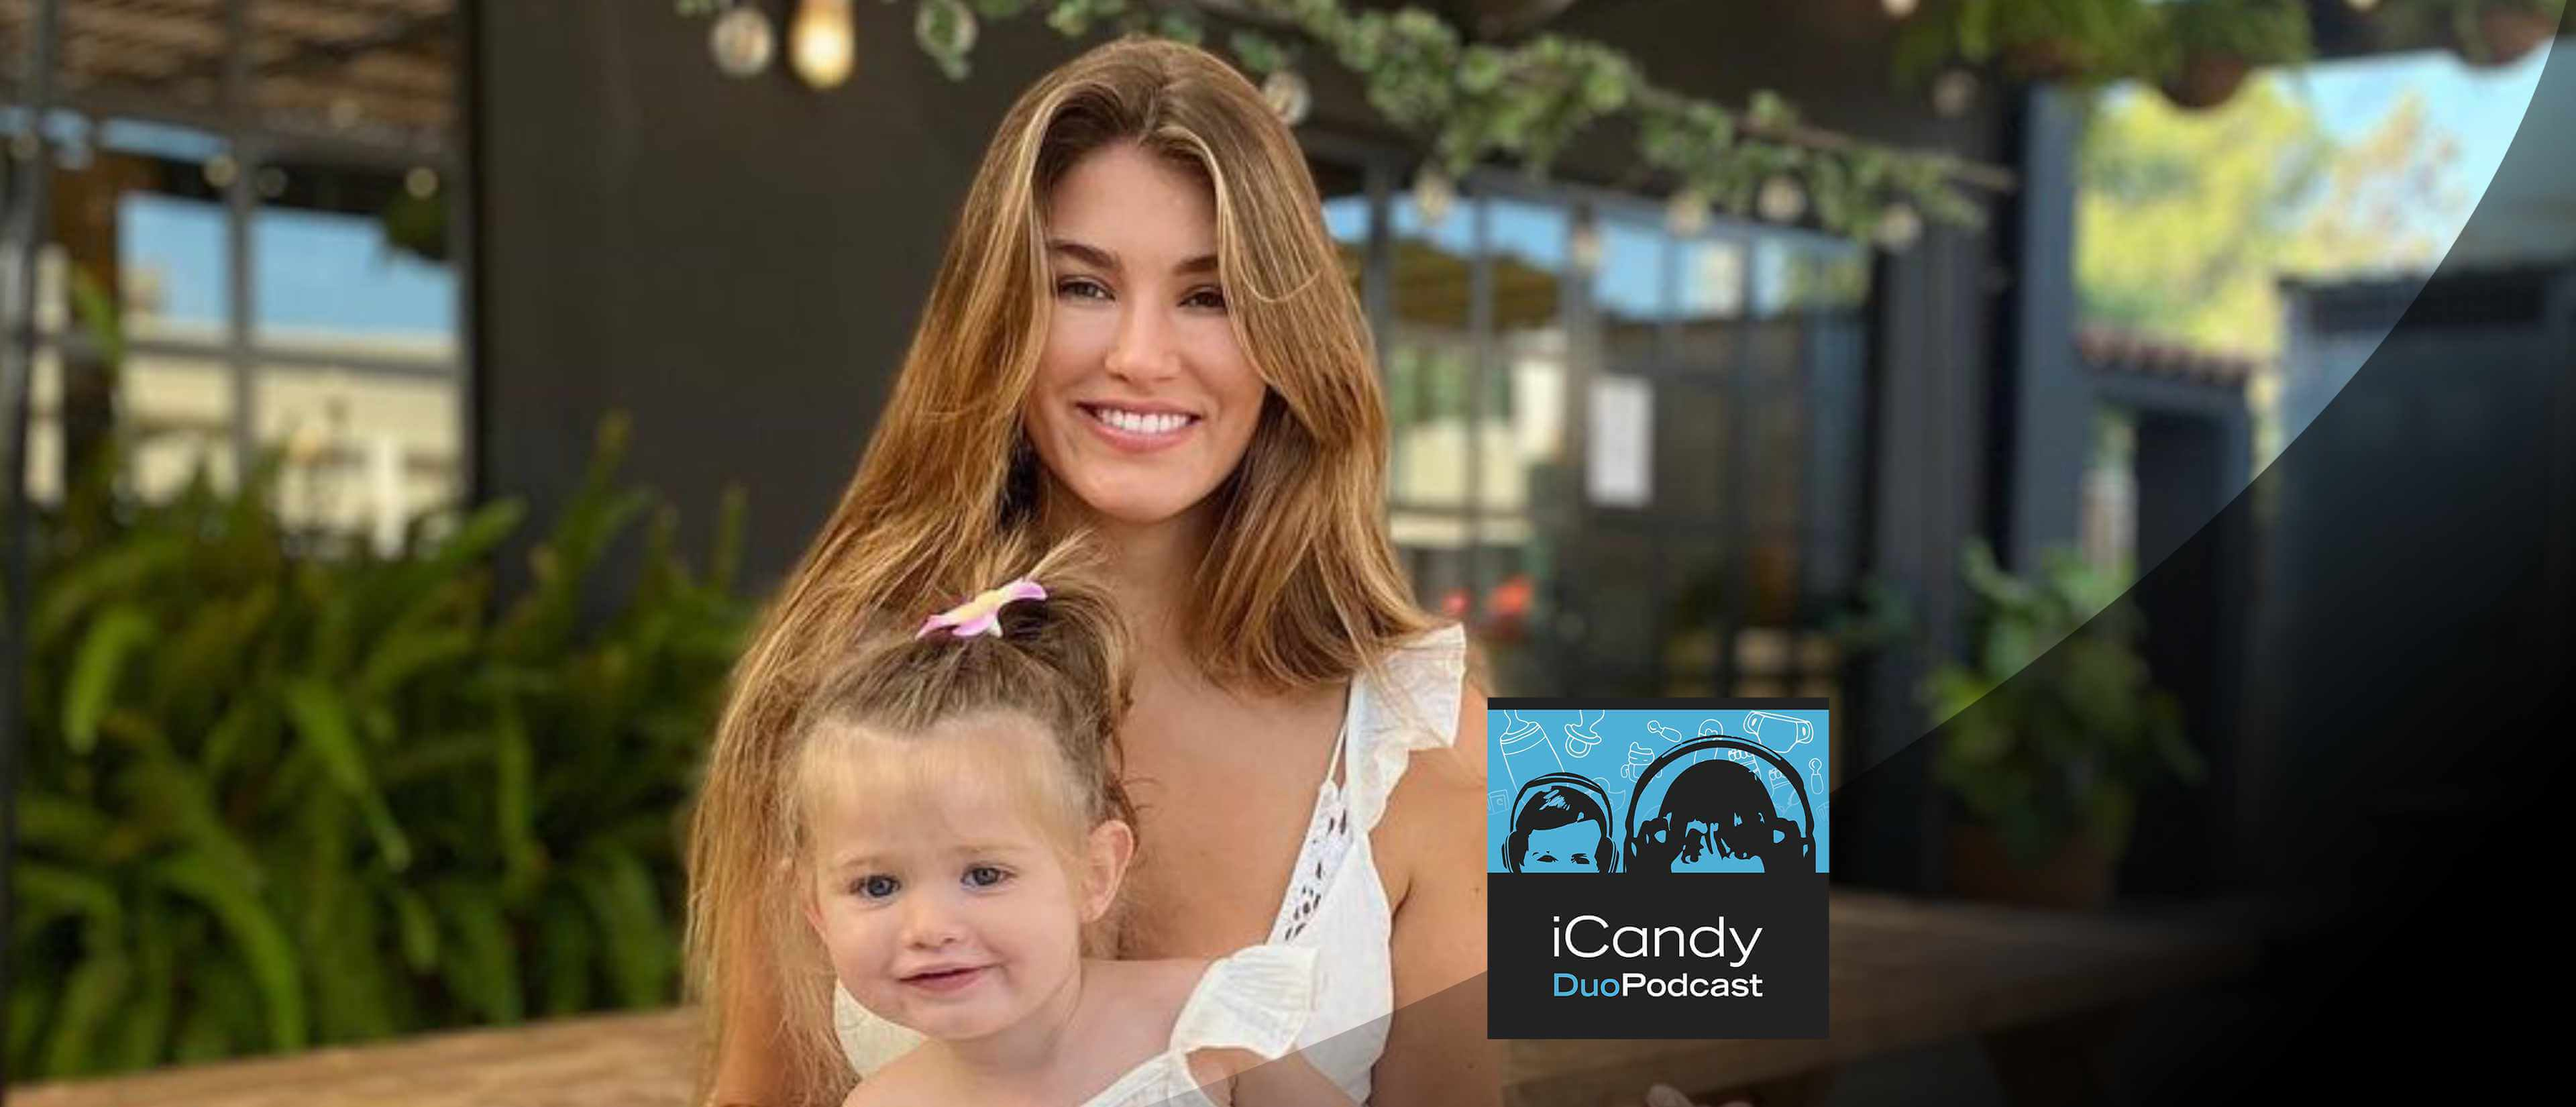 iCandy Duo Podcast - Amy Willerton